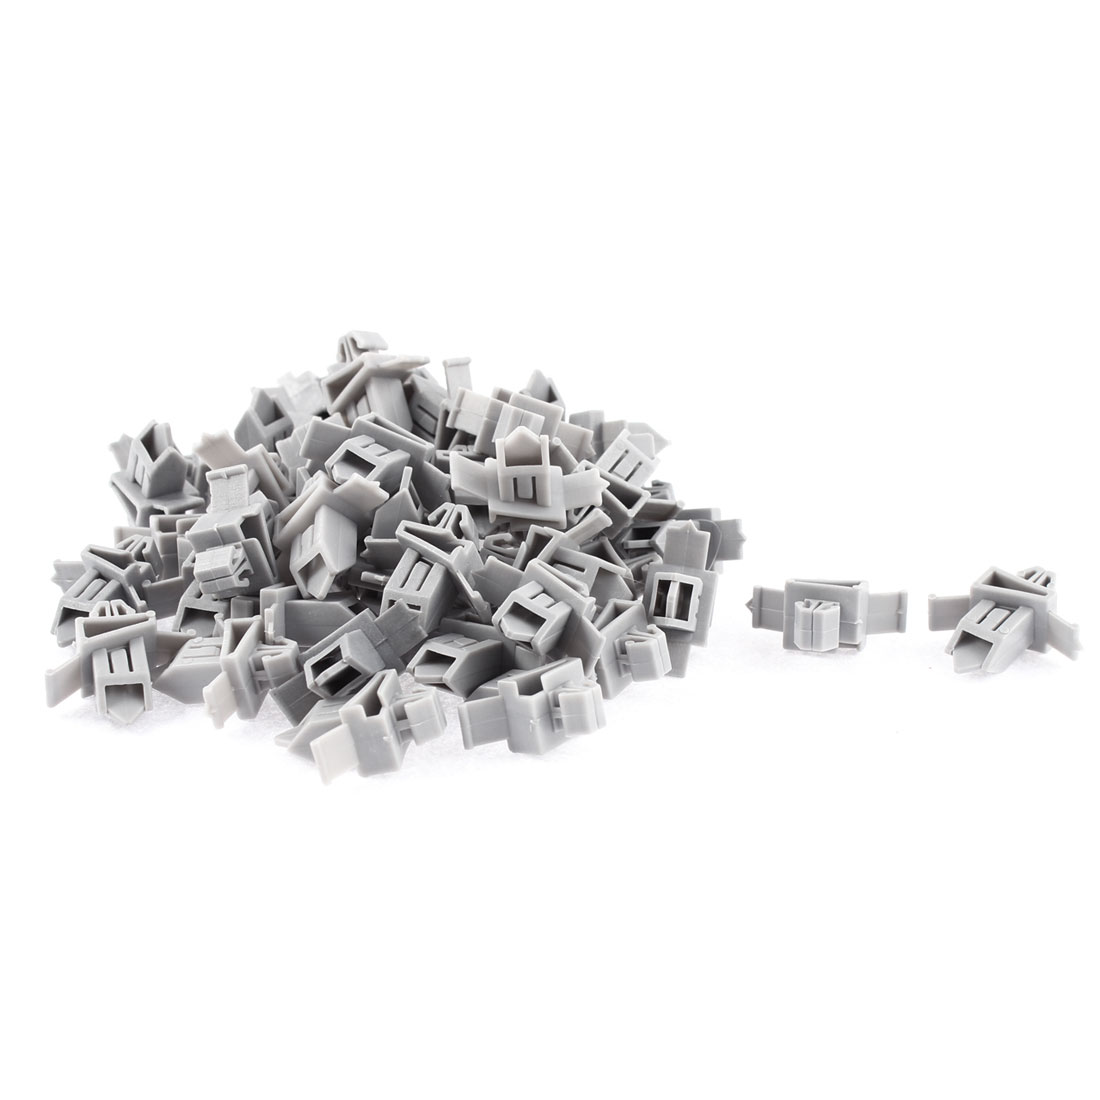 50 Pcs Gray Plastic Rivet Bumper Lining Trim Panel Retainer Fastener Clips for Toyota Prado